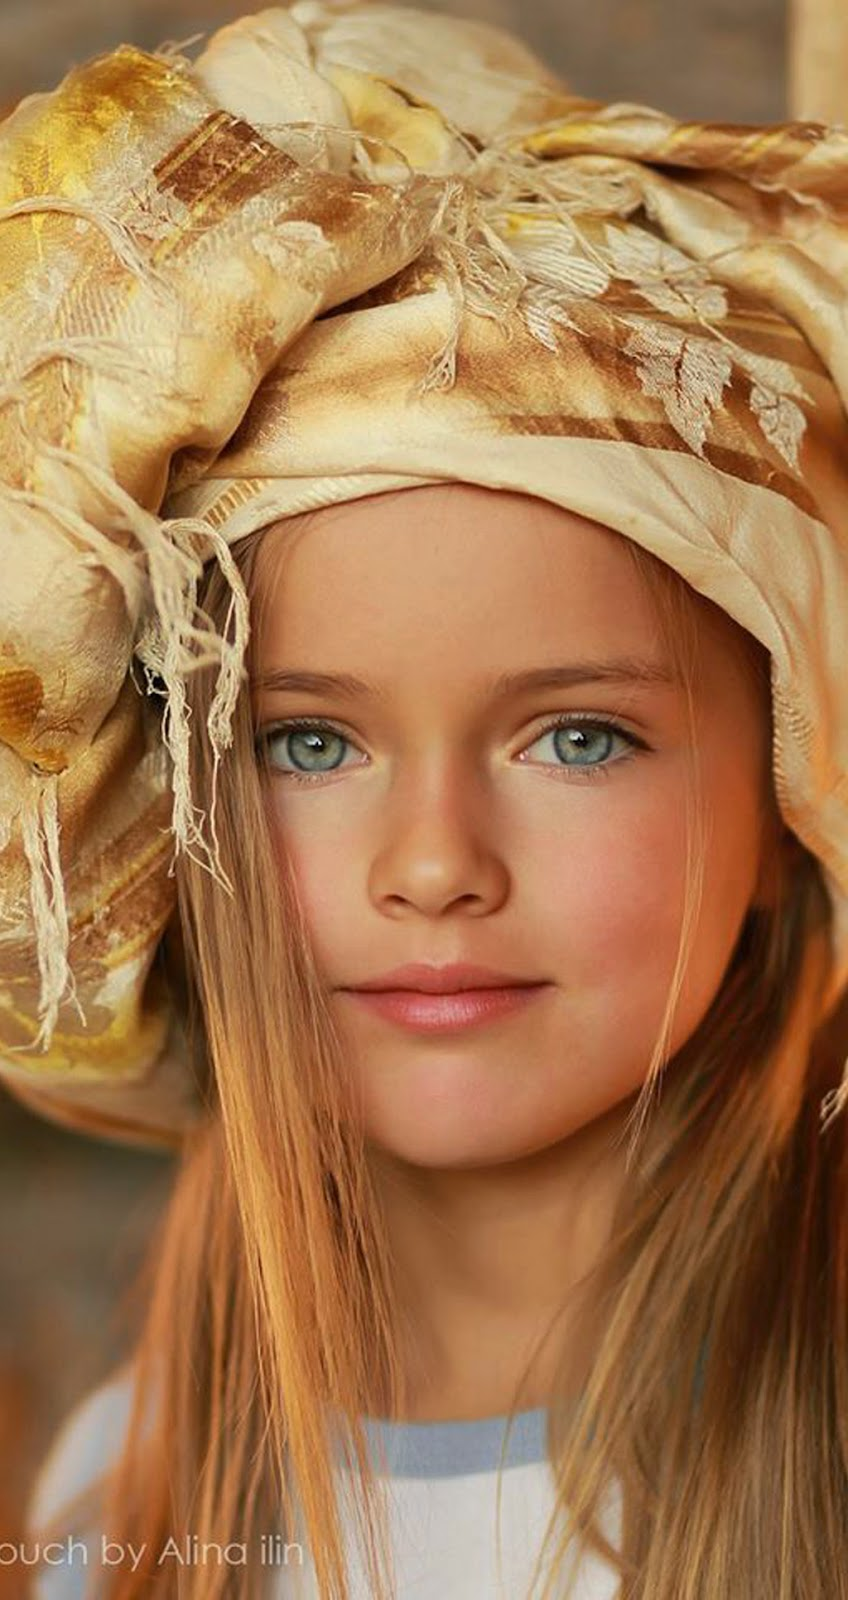 Pre Teen Model Gallery: Music News: PRETEEN PORTRAIT MODEL FROM